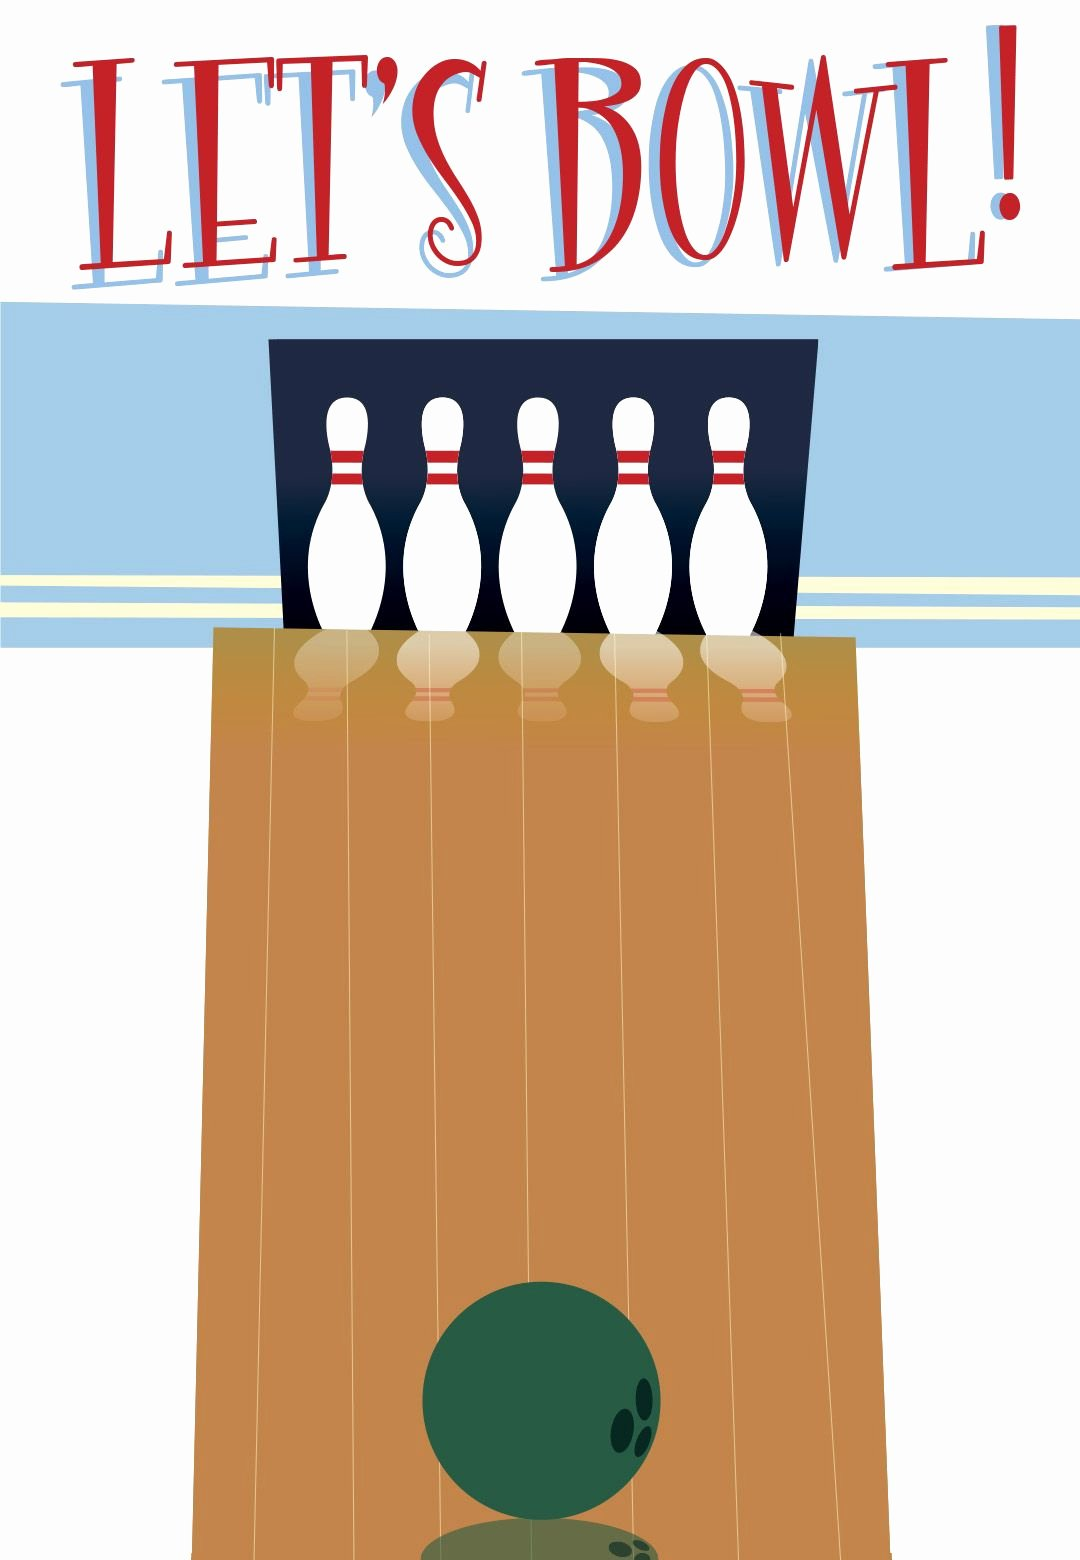 Bowling Party Invitations Templates Luxury Free Printable Bowling Party Invitation Super Cute for tournaments and Birthday Parties